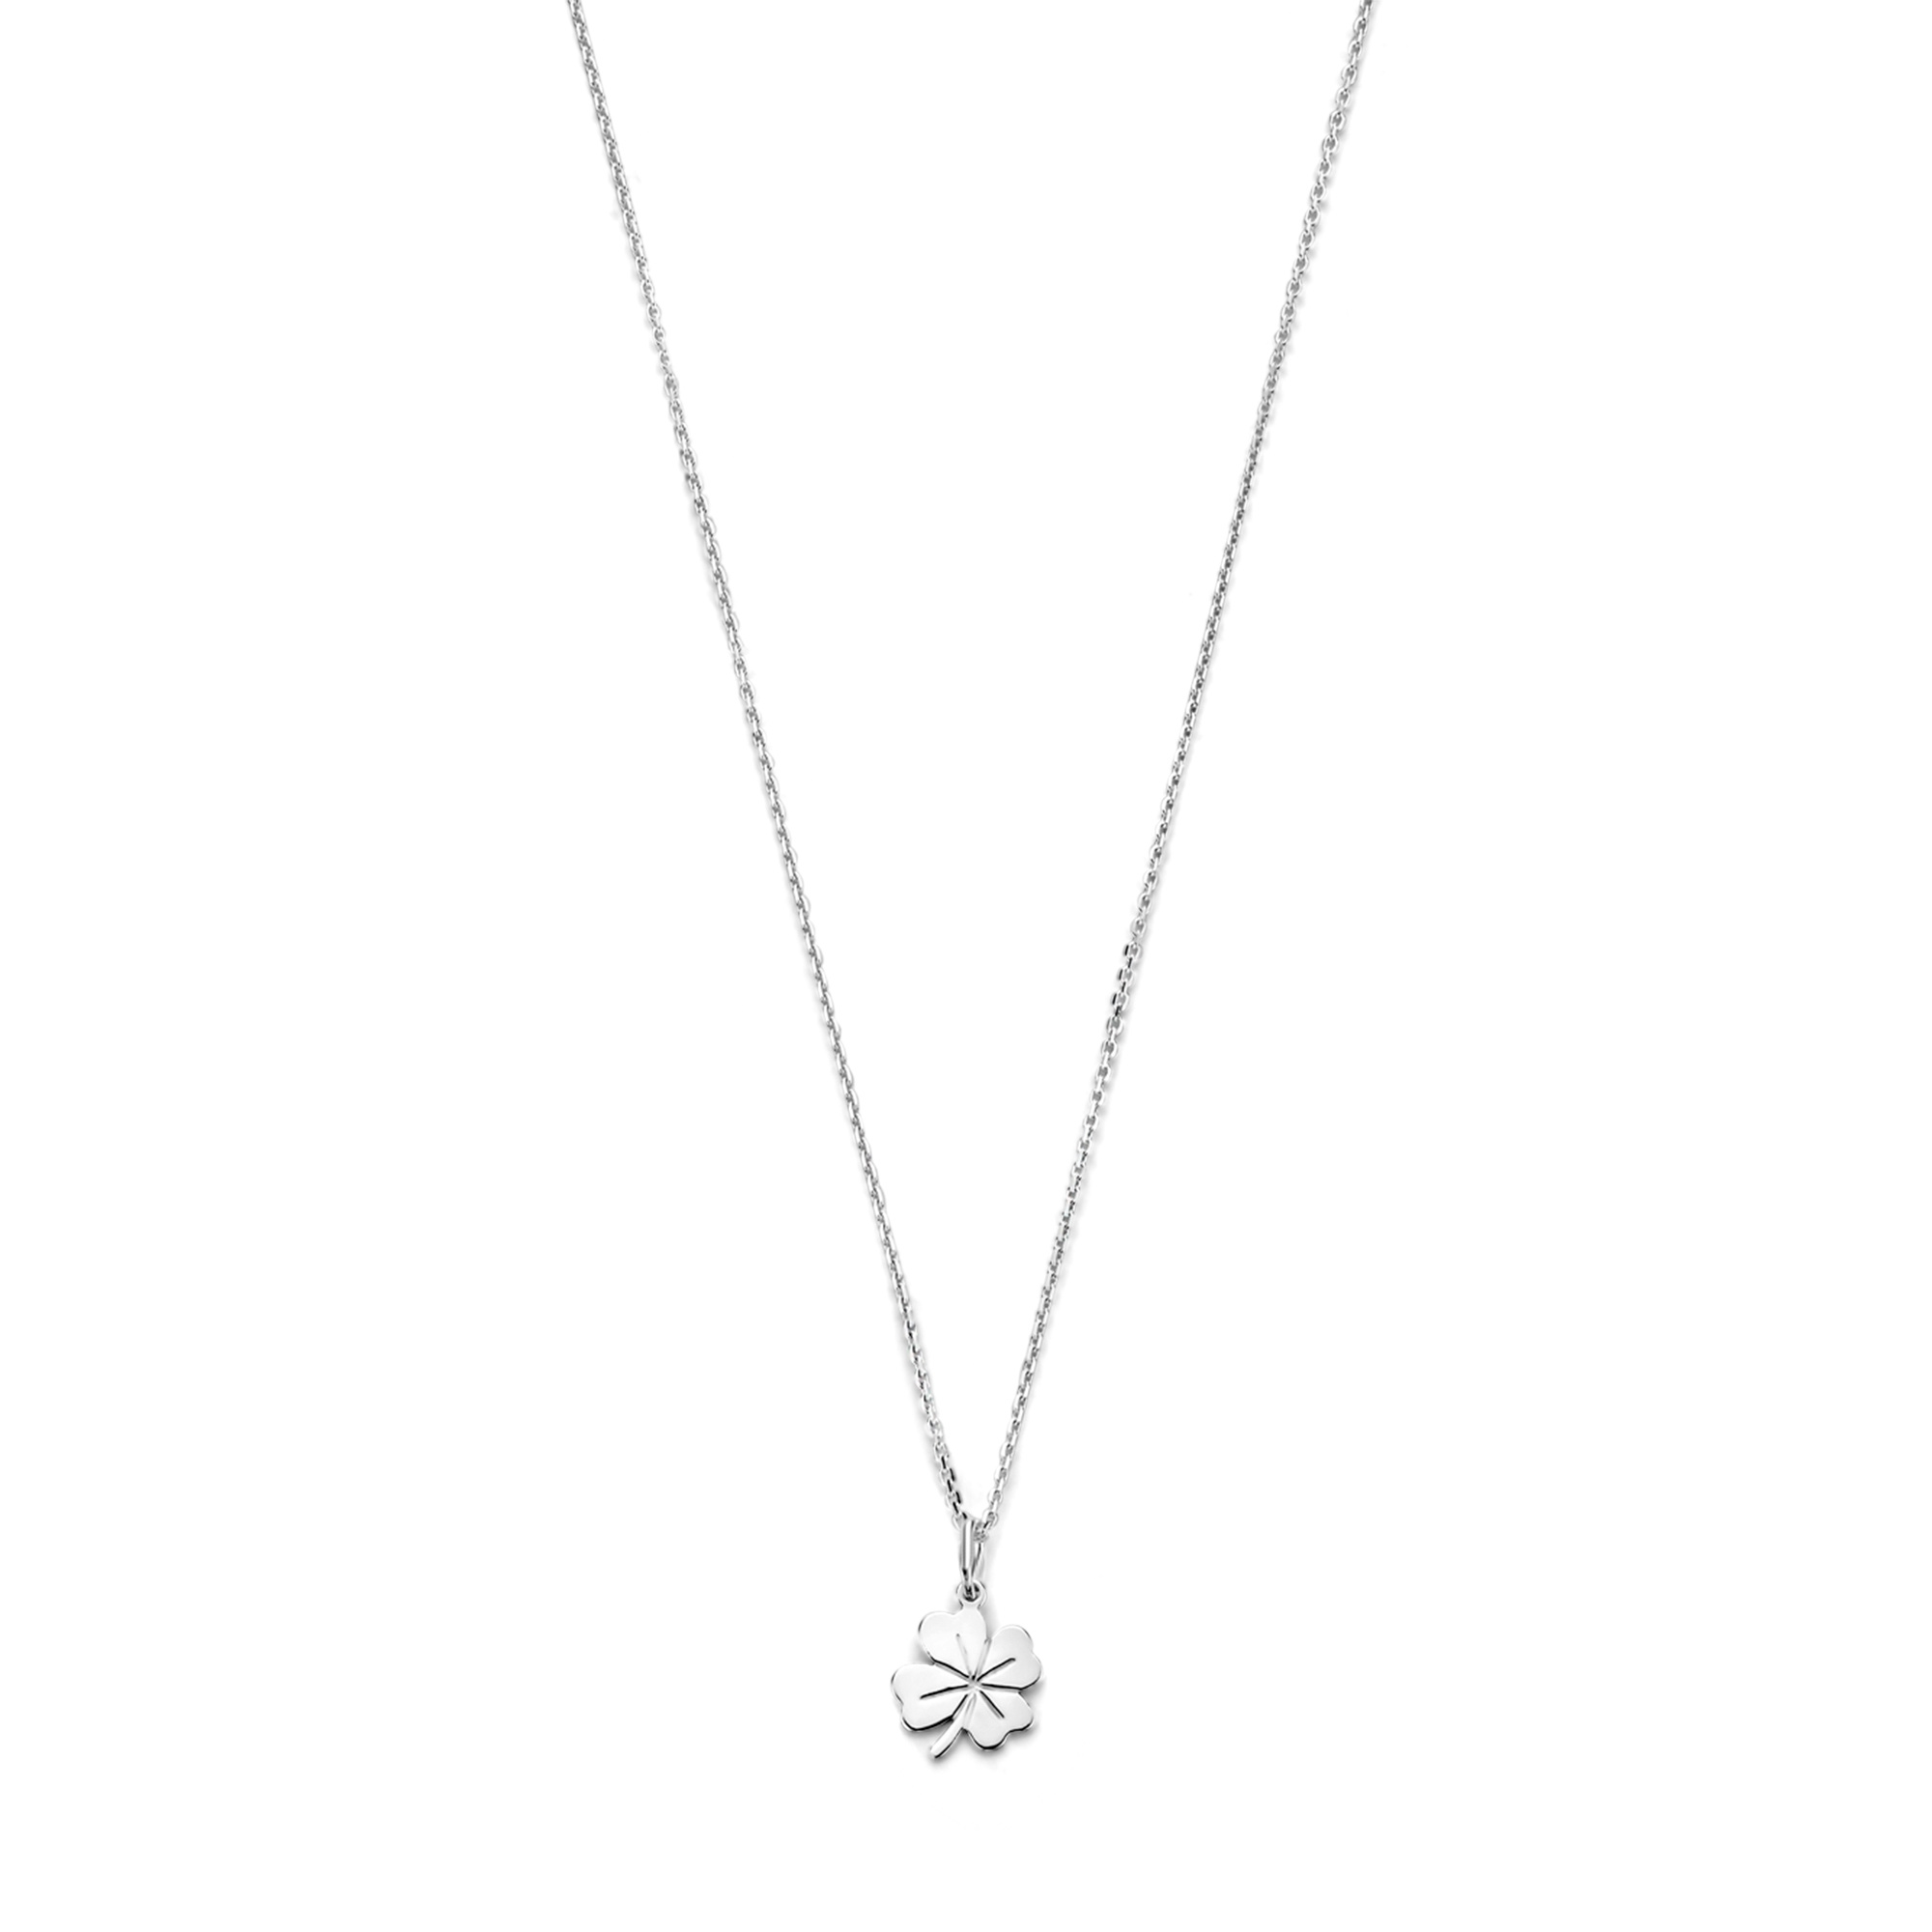 Selected Jewels Julie Olivia 925 sterling silver necklace with four-leaf clover